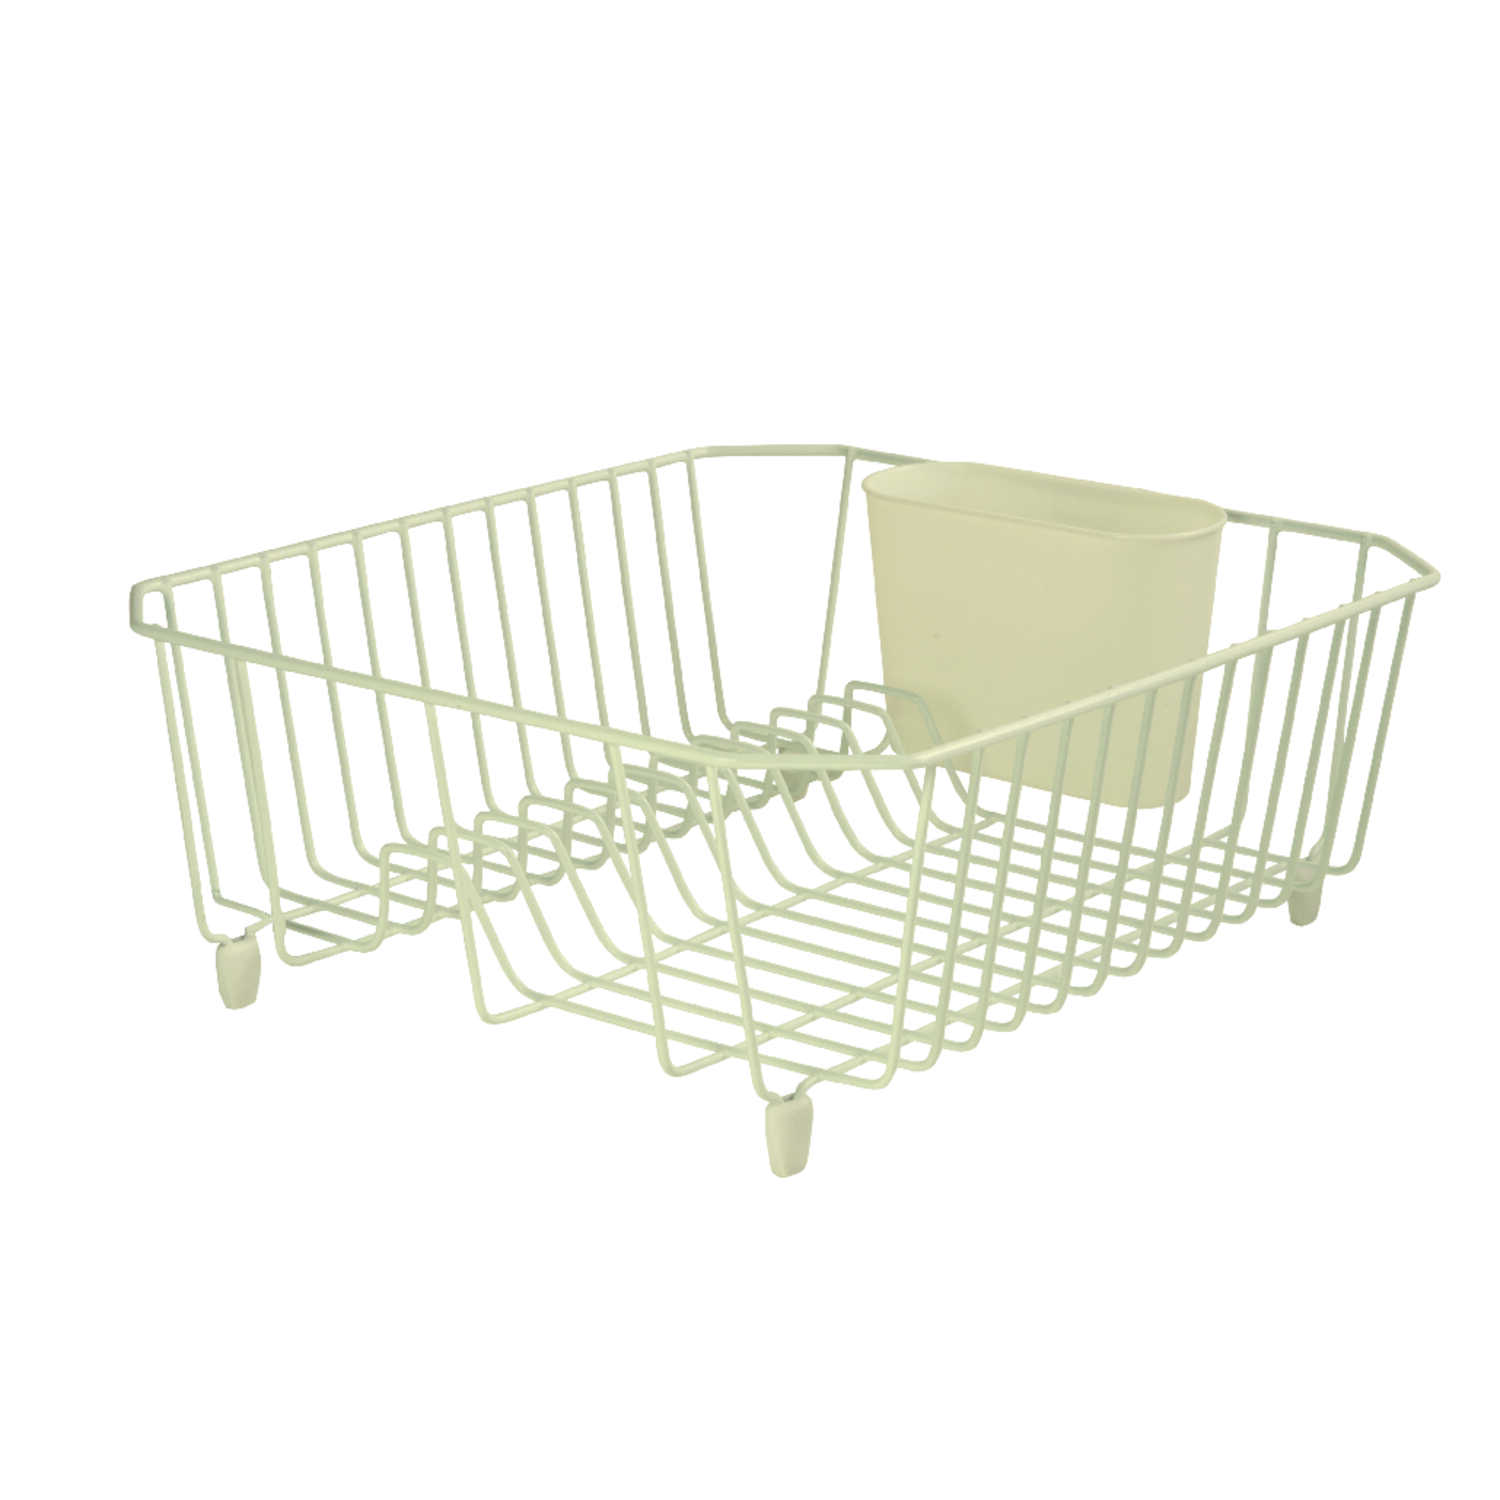 Rubbermaid  5.3 in. H x 12.4 in. W x 14.3 in. L Steel  Dish Drainer  Bisque